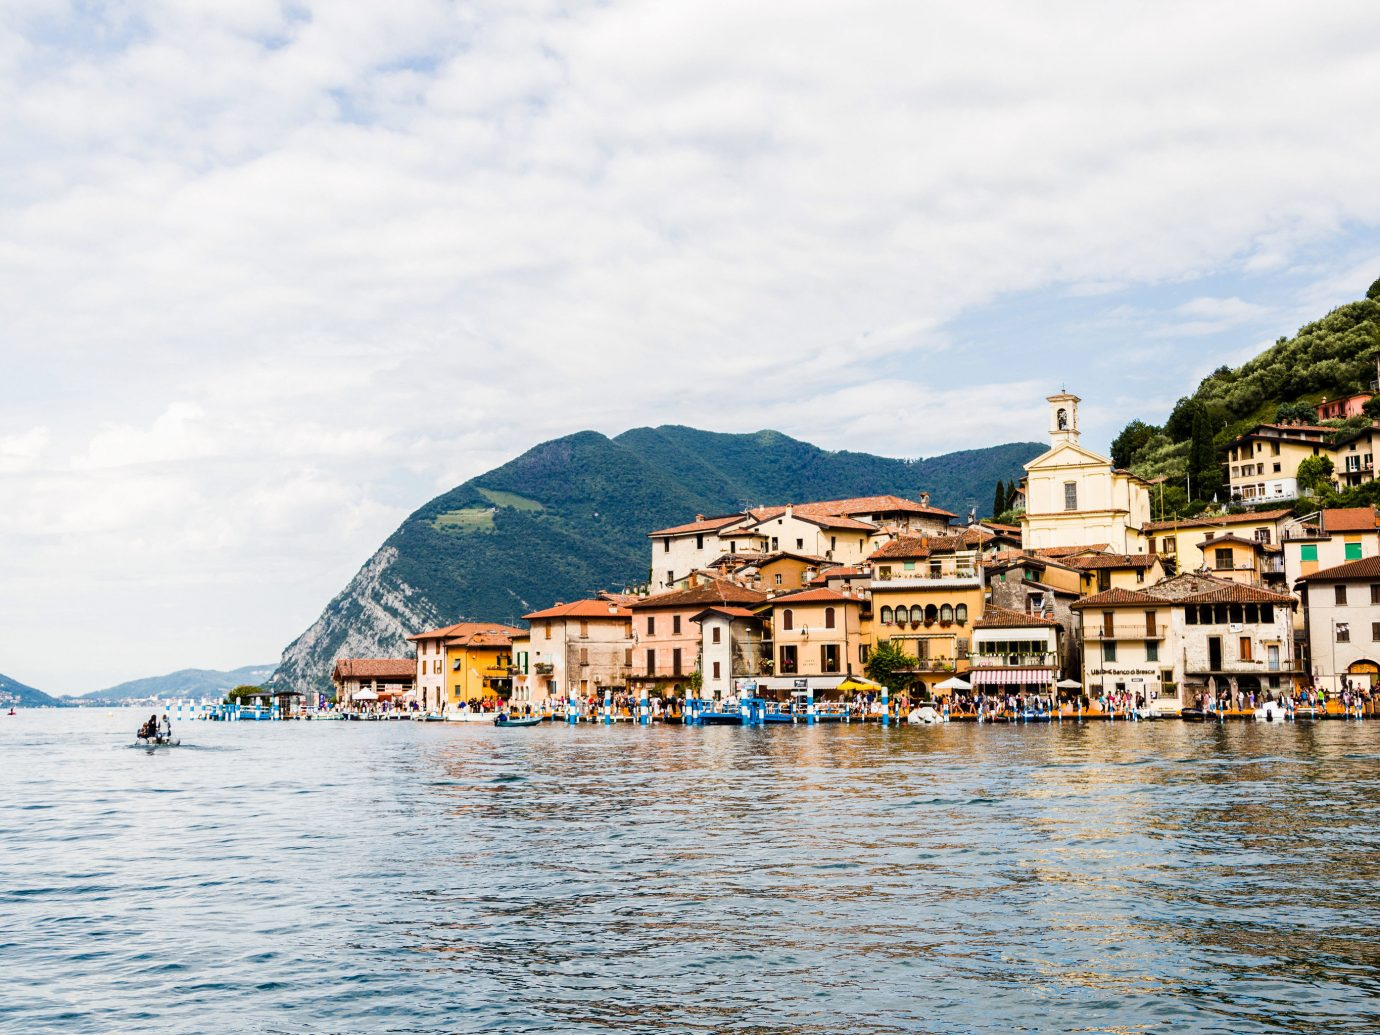 europe Italy Off-the-beaten Path Trip Ideas Sea sky body of water water Coast tourism Lake mountain River reflection City Boat bay tree coastal and oceanic landforms Ocean travel vacation landscape cloud Village